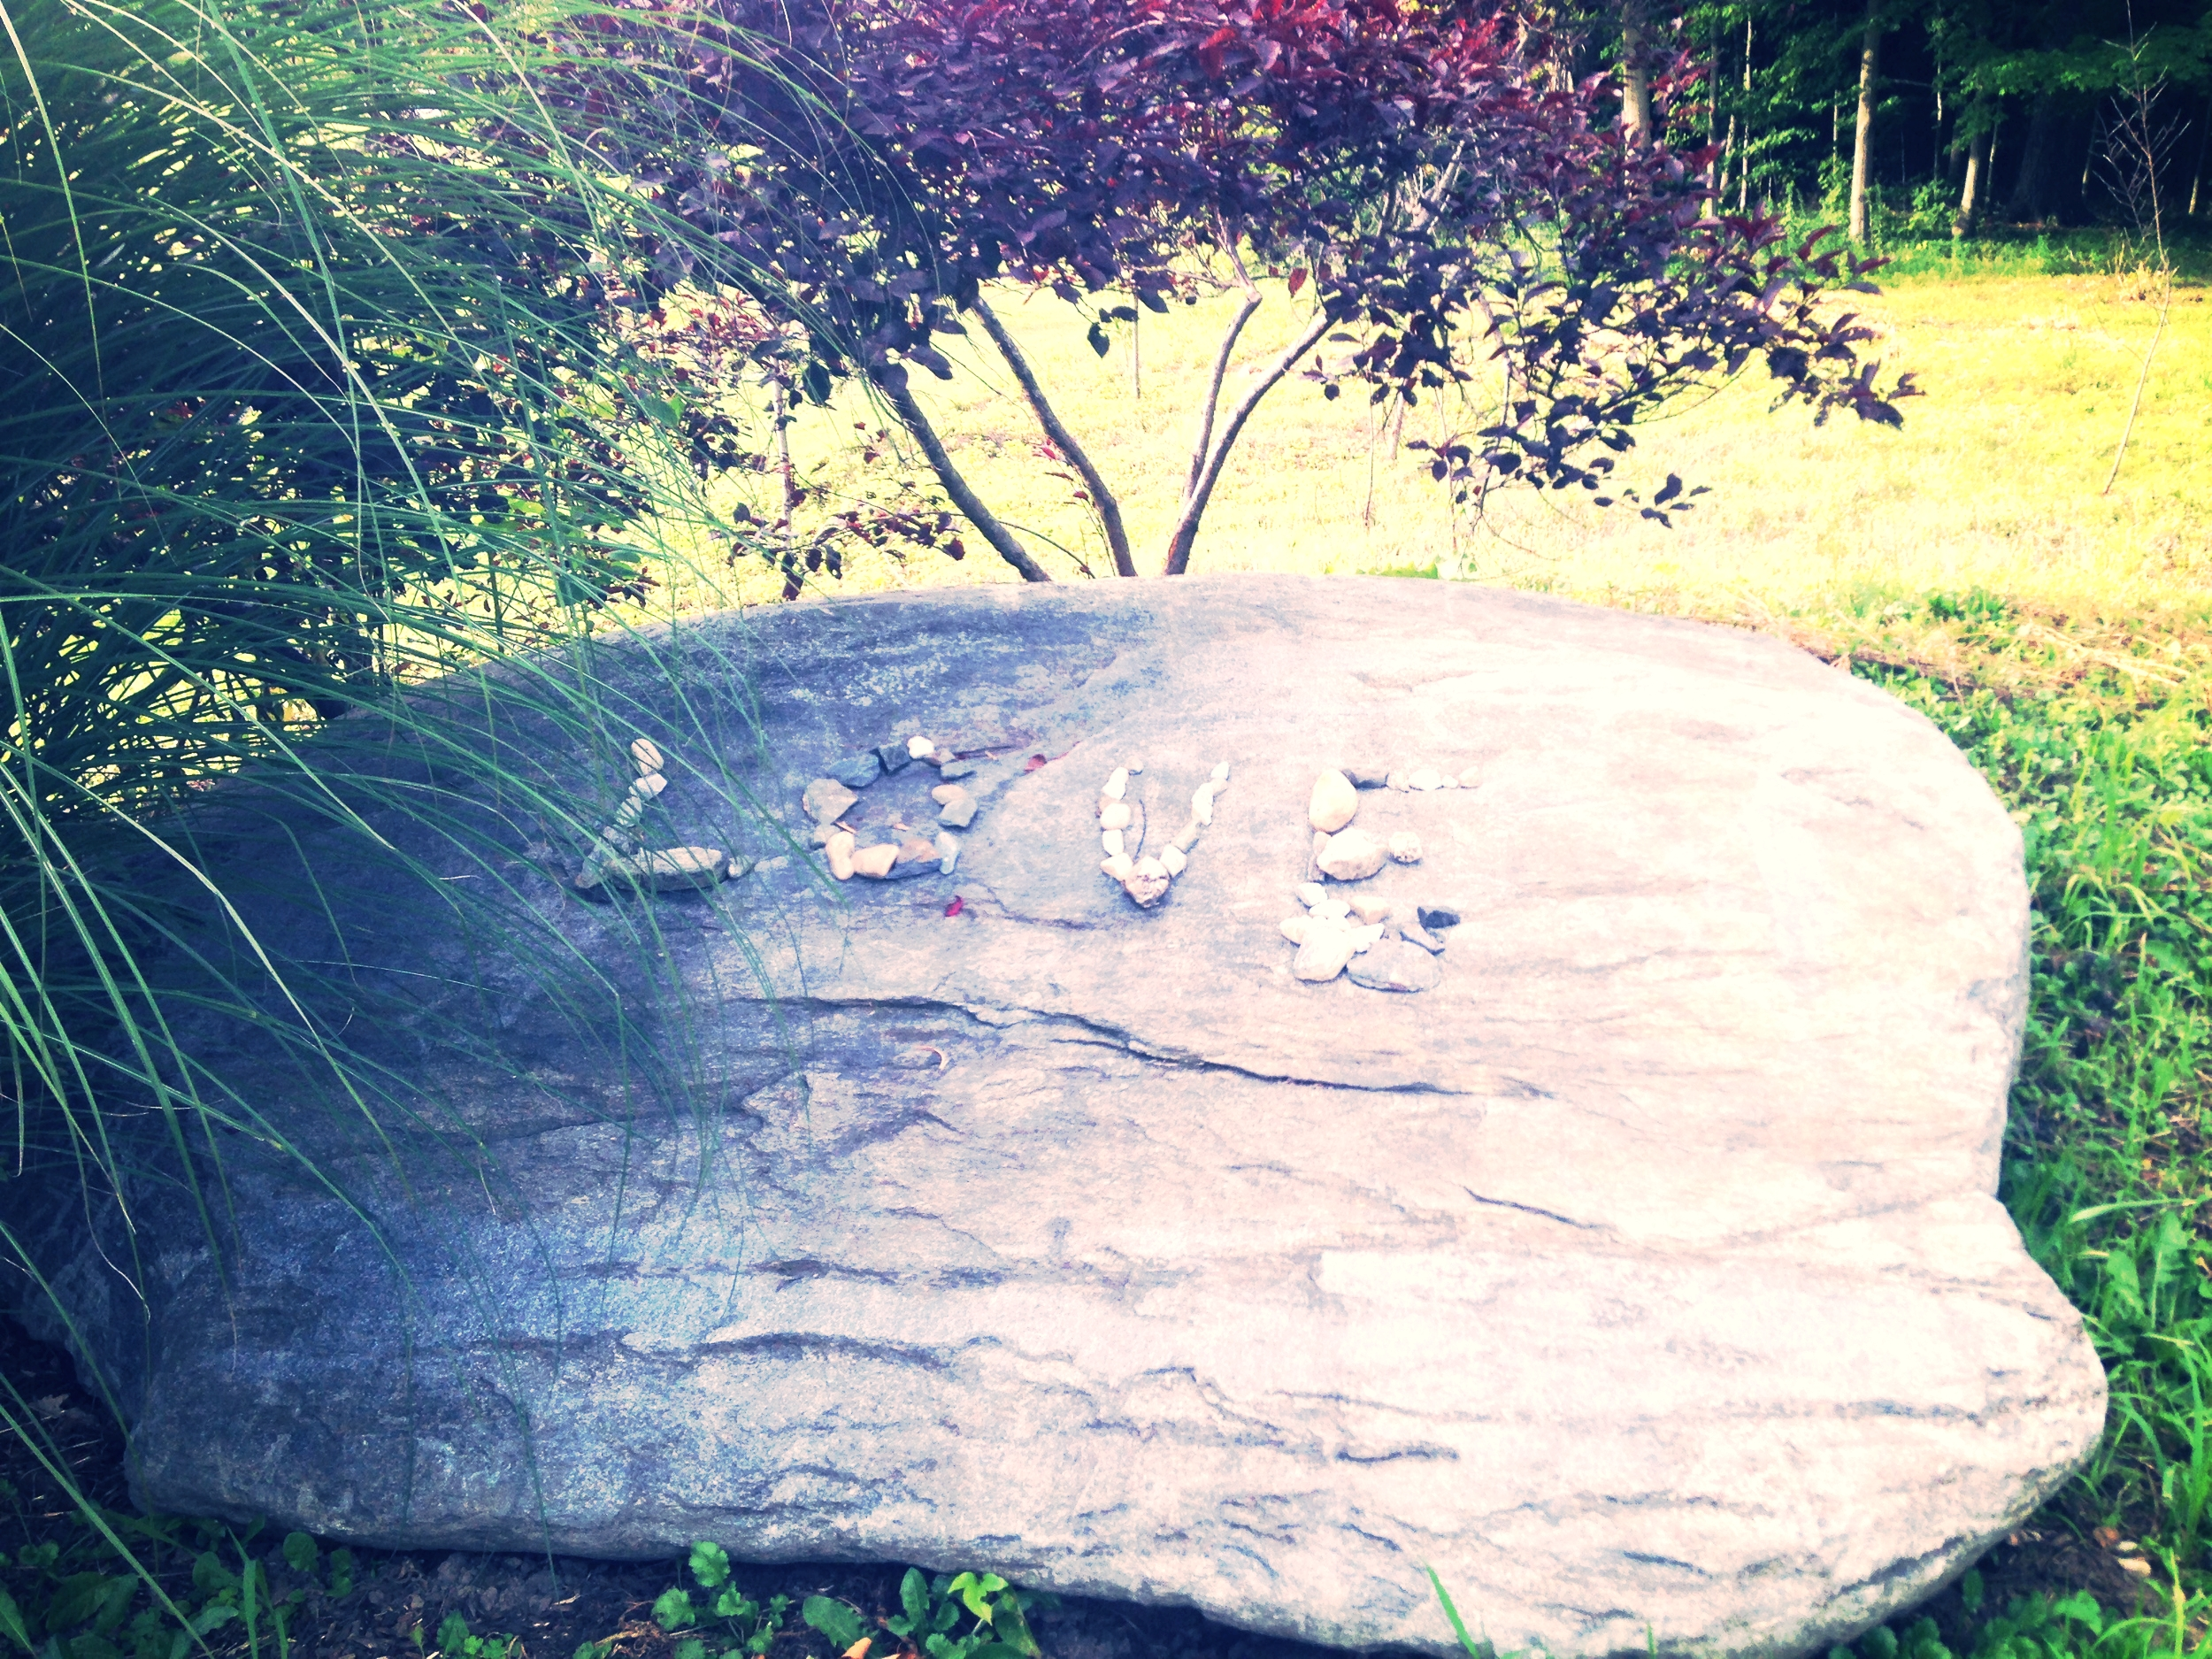 The LOVE rock at Kripalu